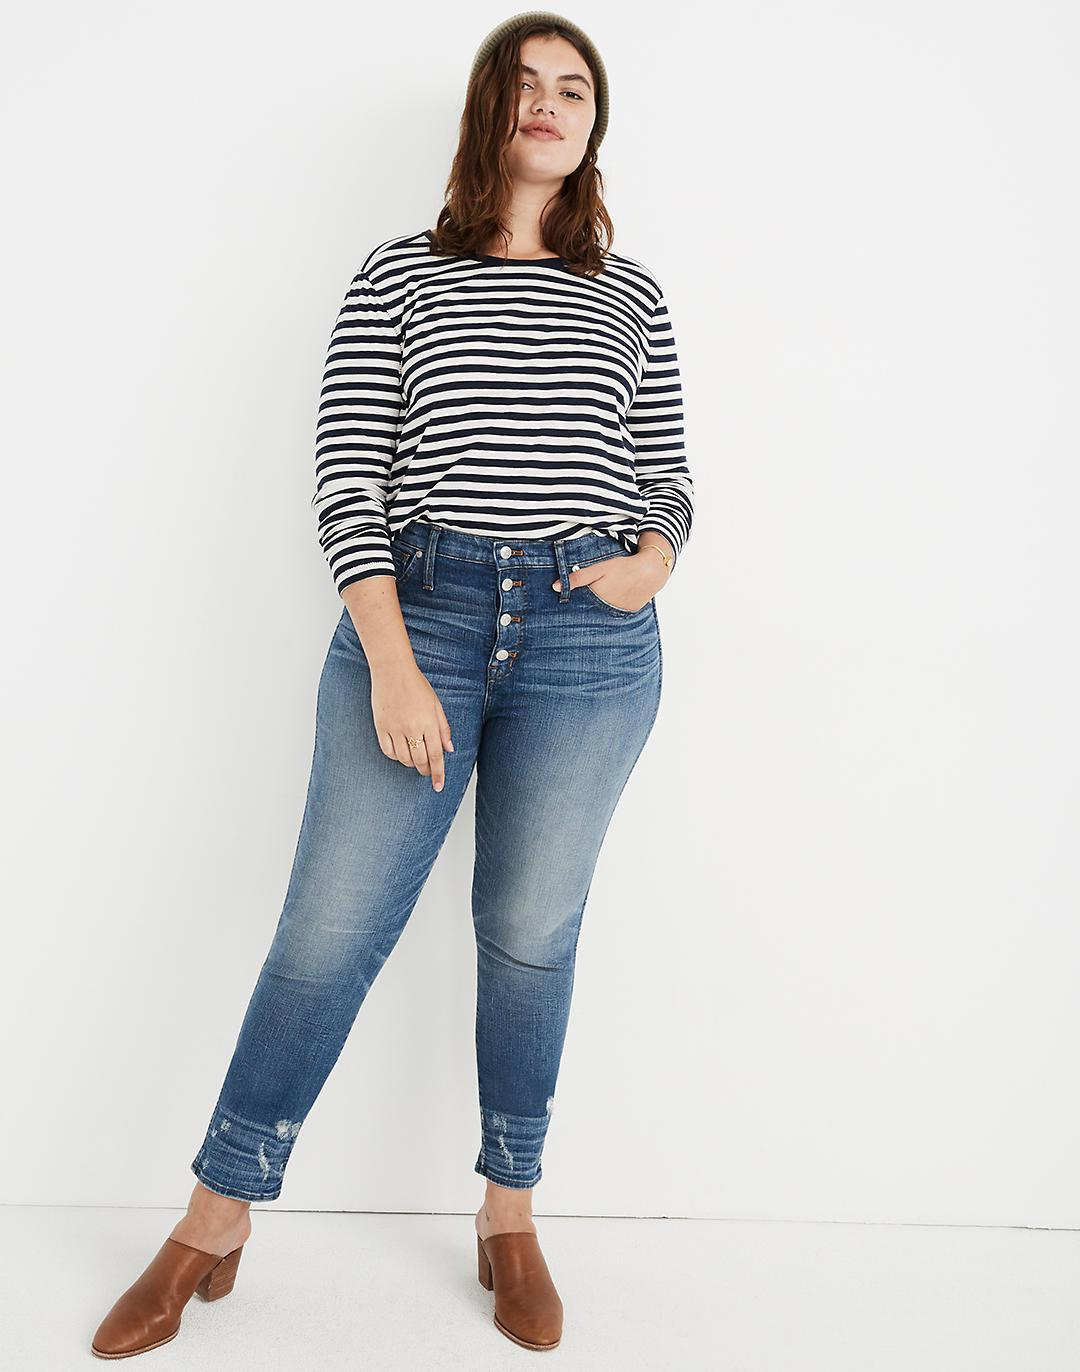 Taller Slim Straight Jeans: Distressed Button-Front Edition